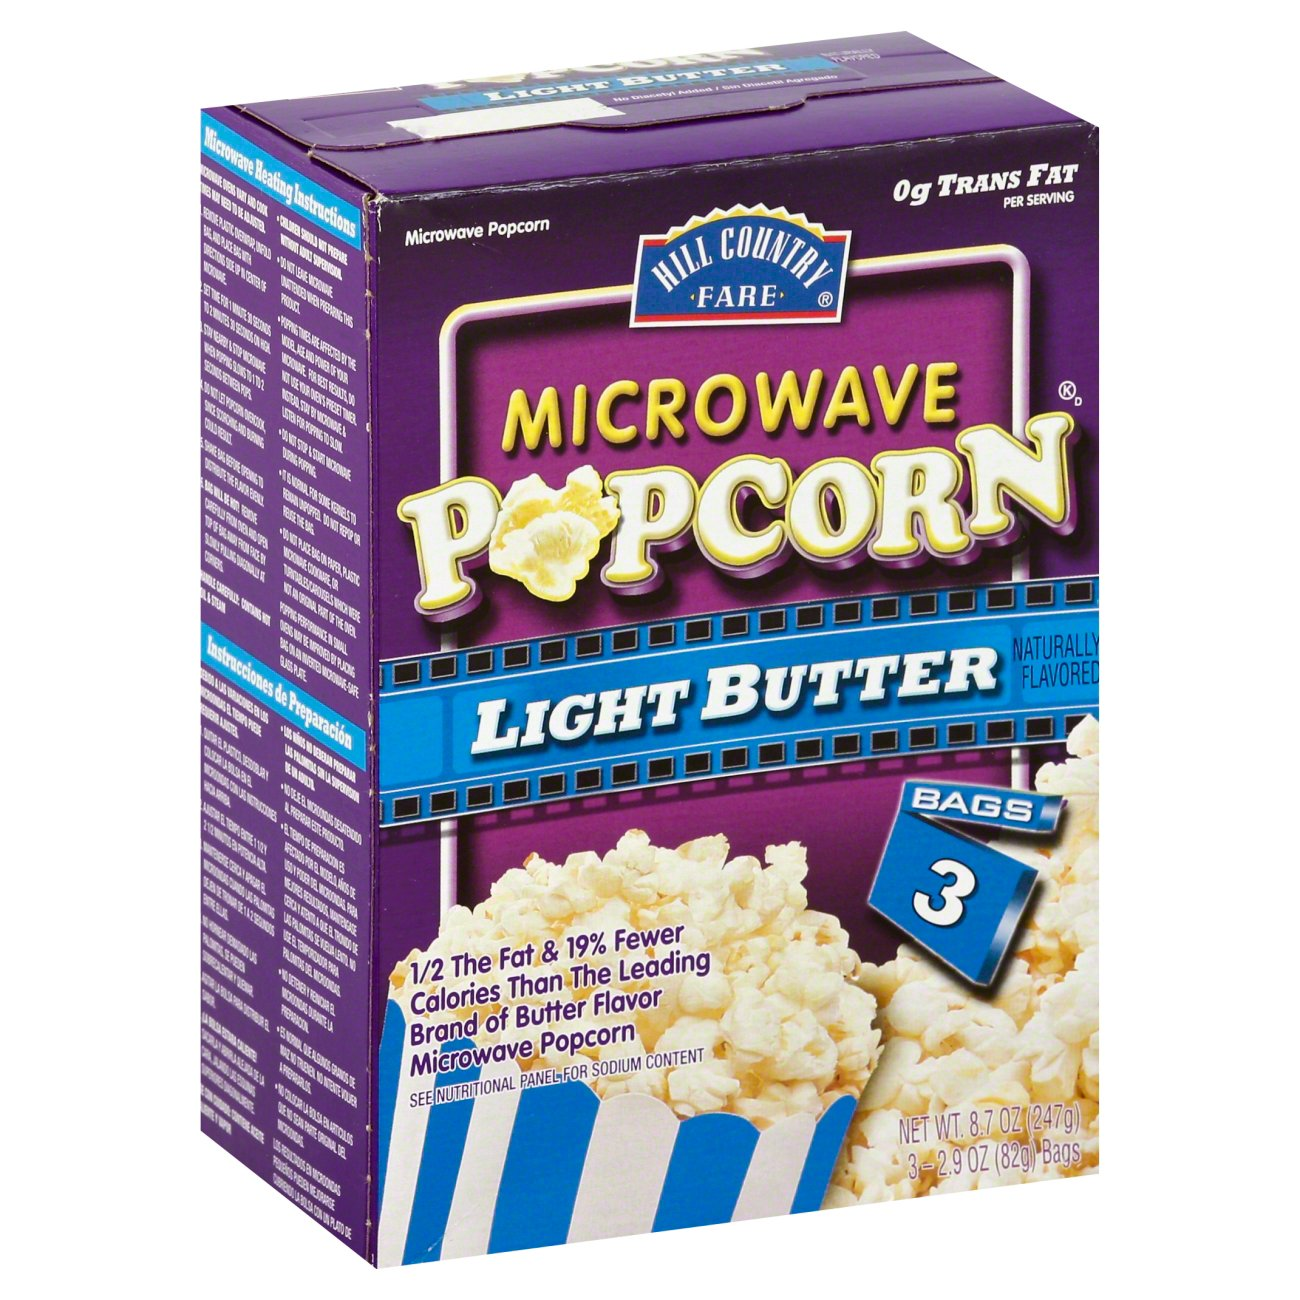 Hill Country Fare Light Er Microwave Popcorn And Rice Cakes At Heb